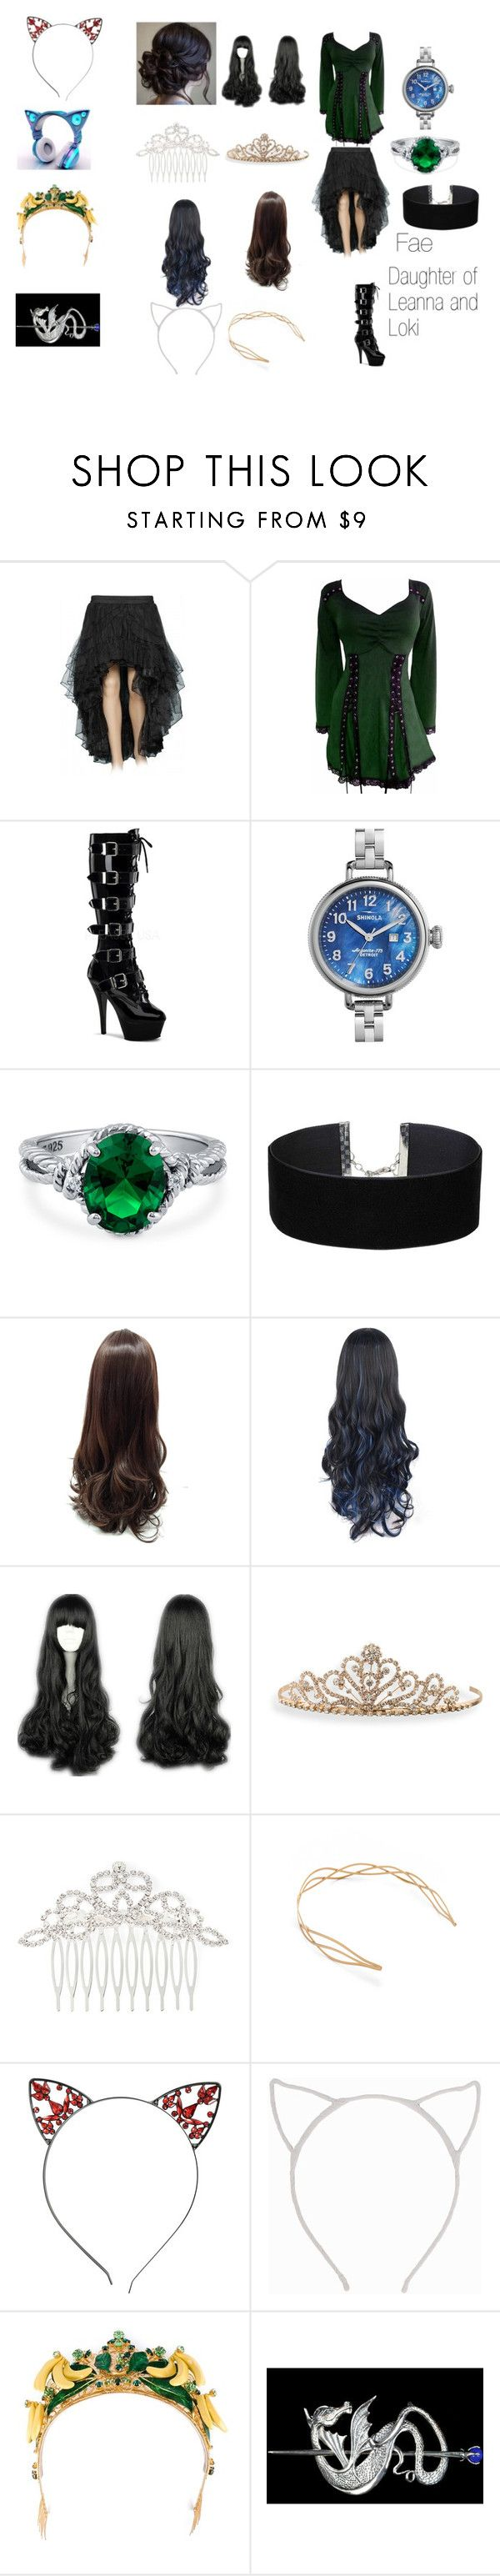 """""""Fae"""" by leanna-and-loki ❤ liked on Polyvore featuring Pleaser, Shinola, BERRICLE, Miss Selfridge, BillyTheTree, Vieste Rosa, Mrs. President & Co., Pieces and Dolce&Gabbana"""